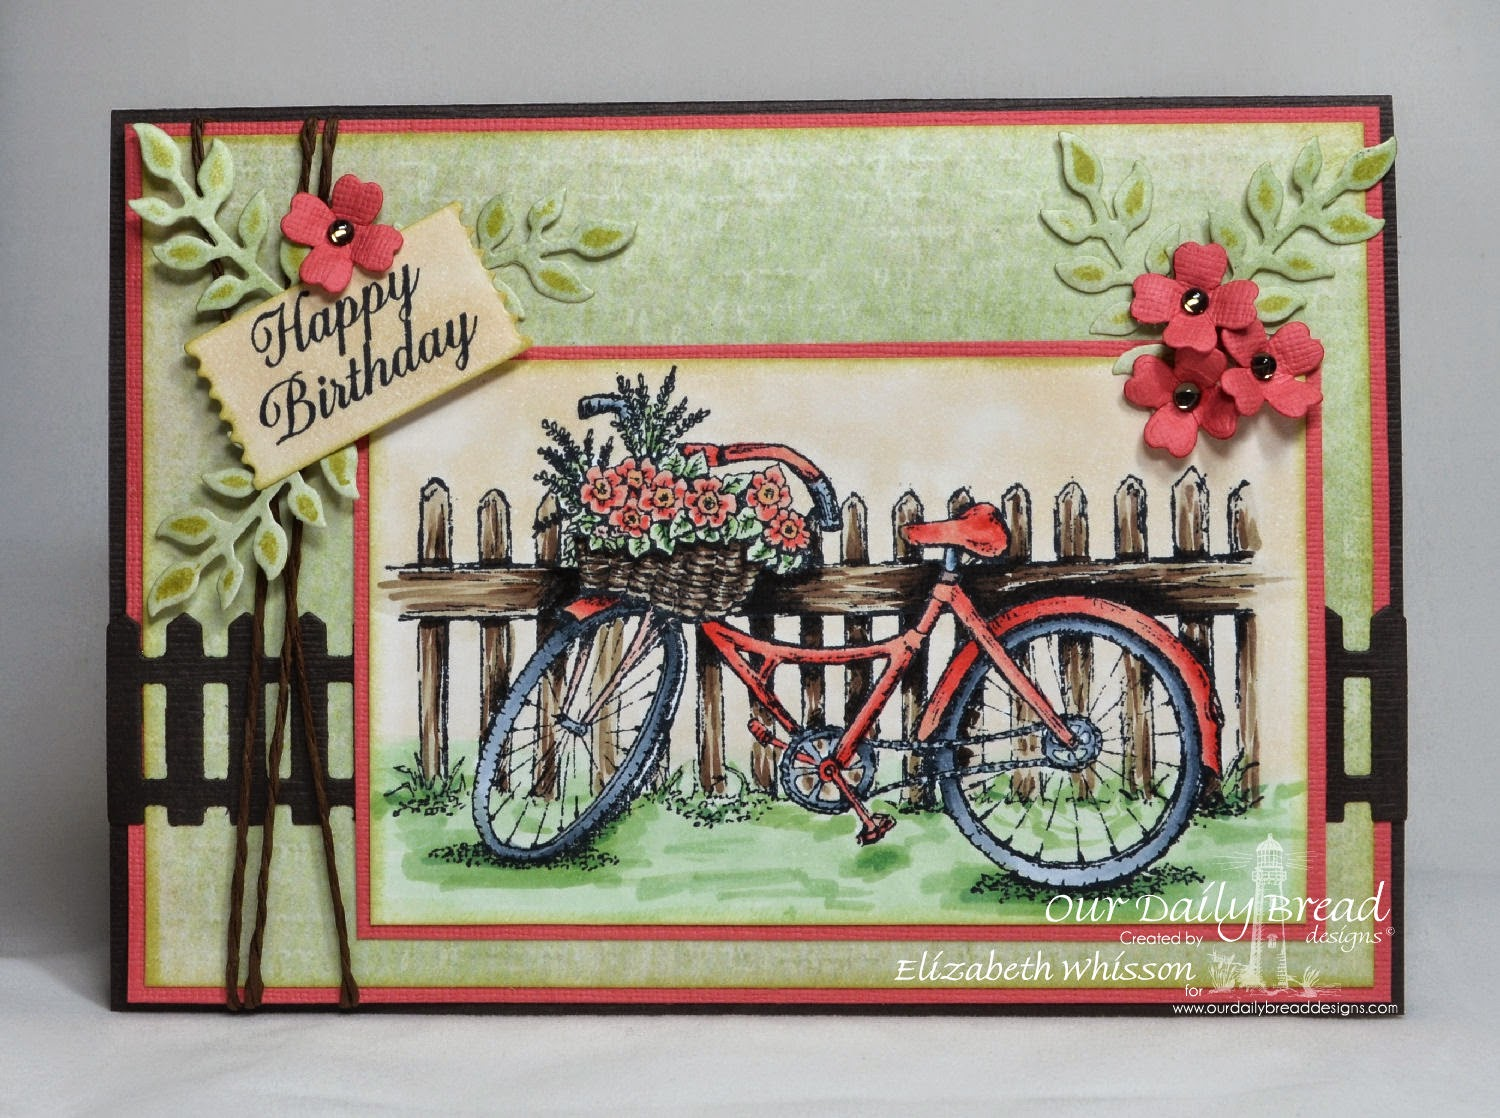 Our Daily Bread Designs, Bicycle, Ornate Border Sentiments, ODBD Fence Die, ODBD Mini Tag Dies, ODBD Ornamental Crosses Dies, ODBD Fancy Foliage Dies, Designed by Elizabeth Whisson